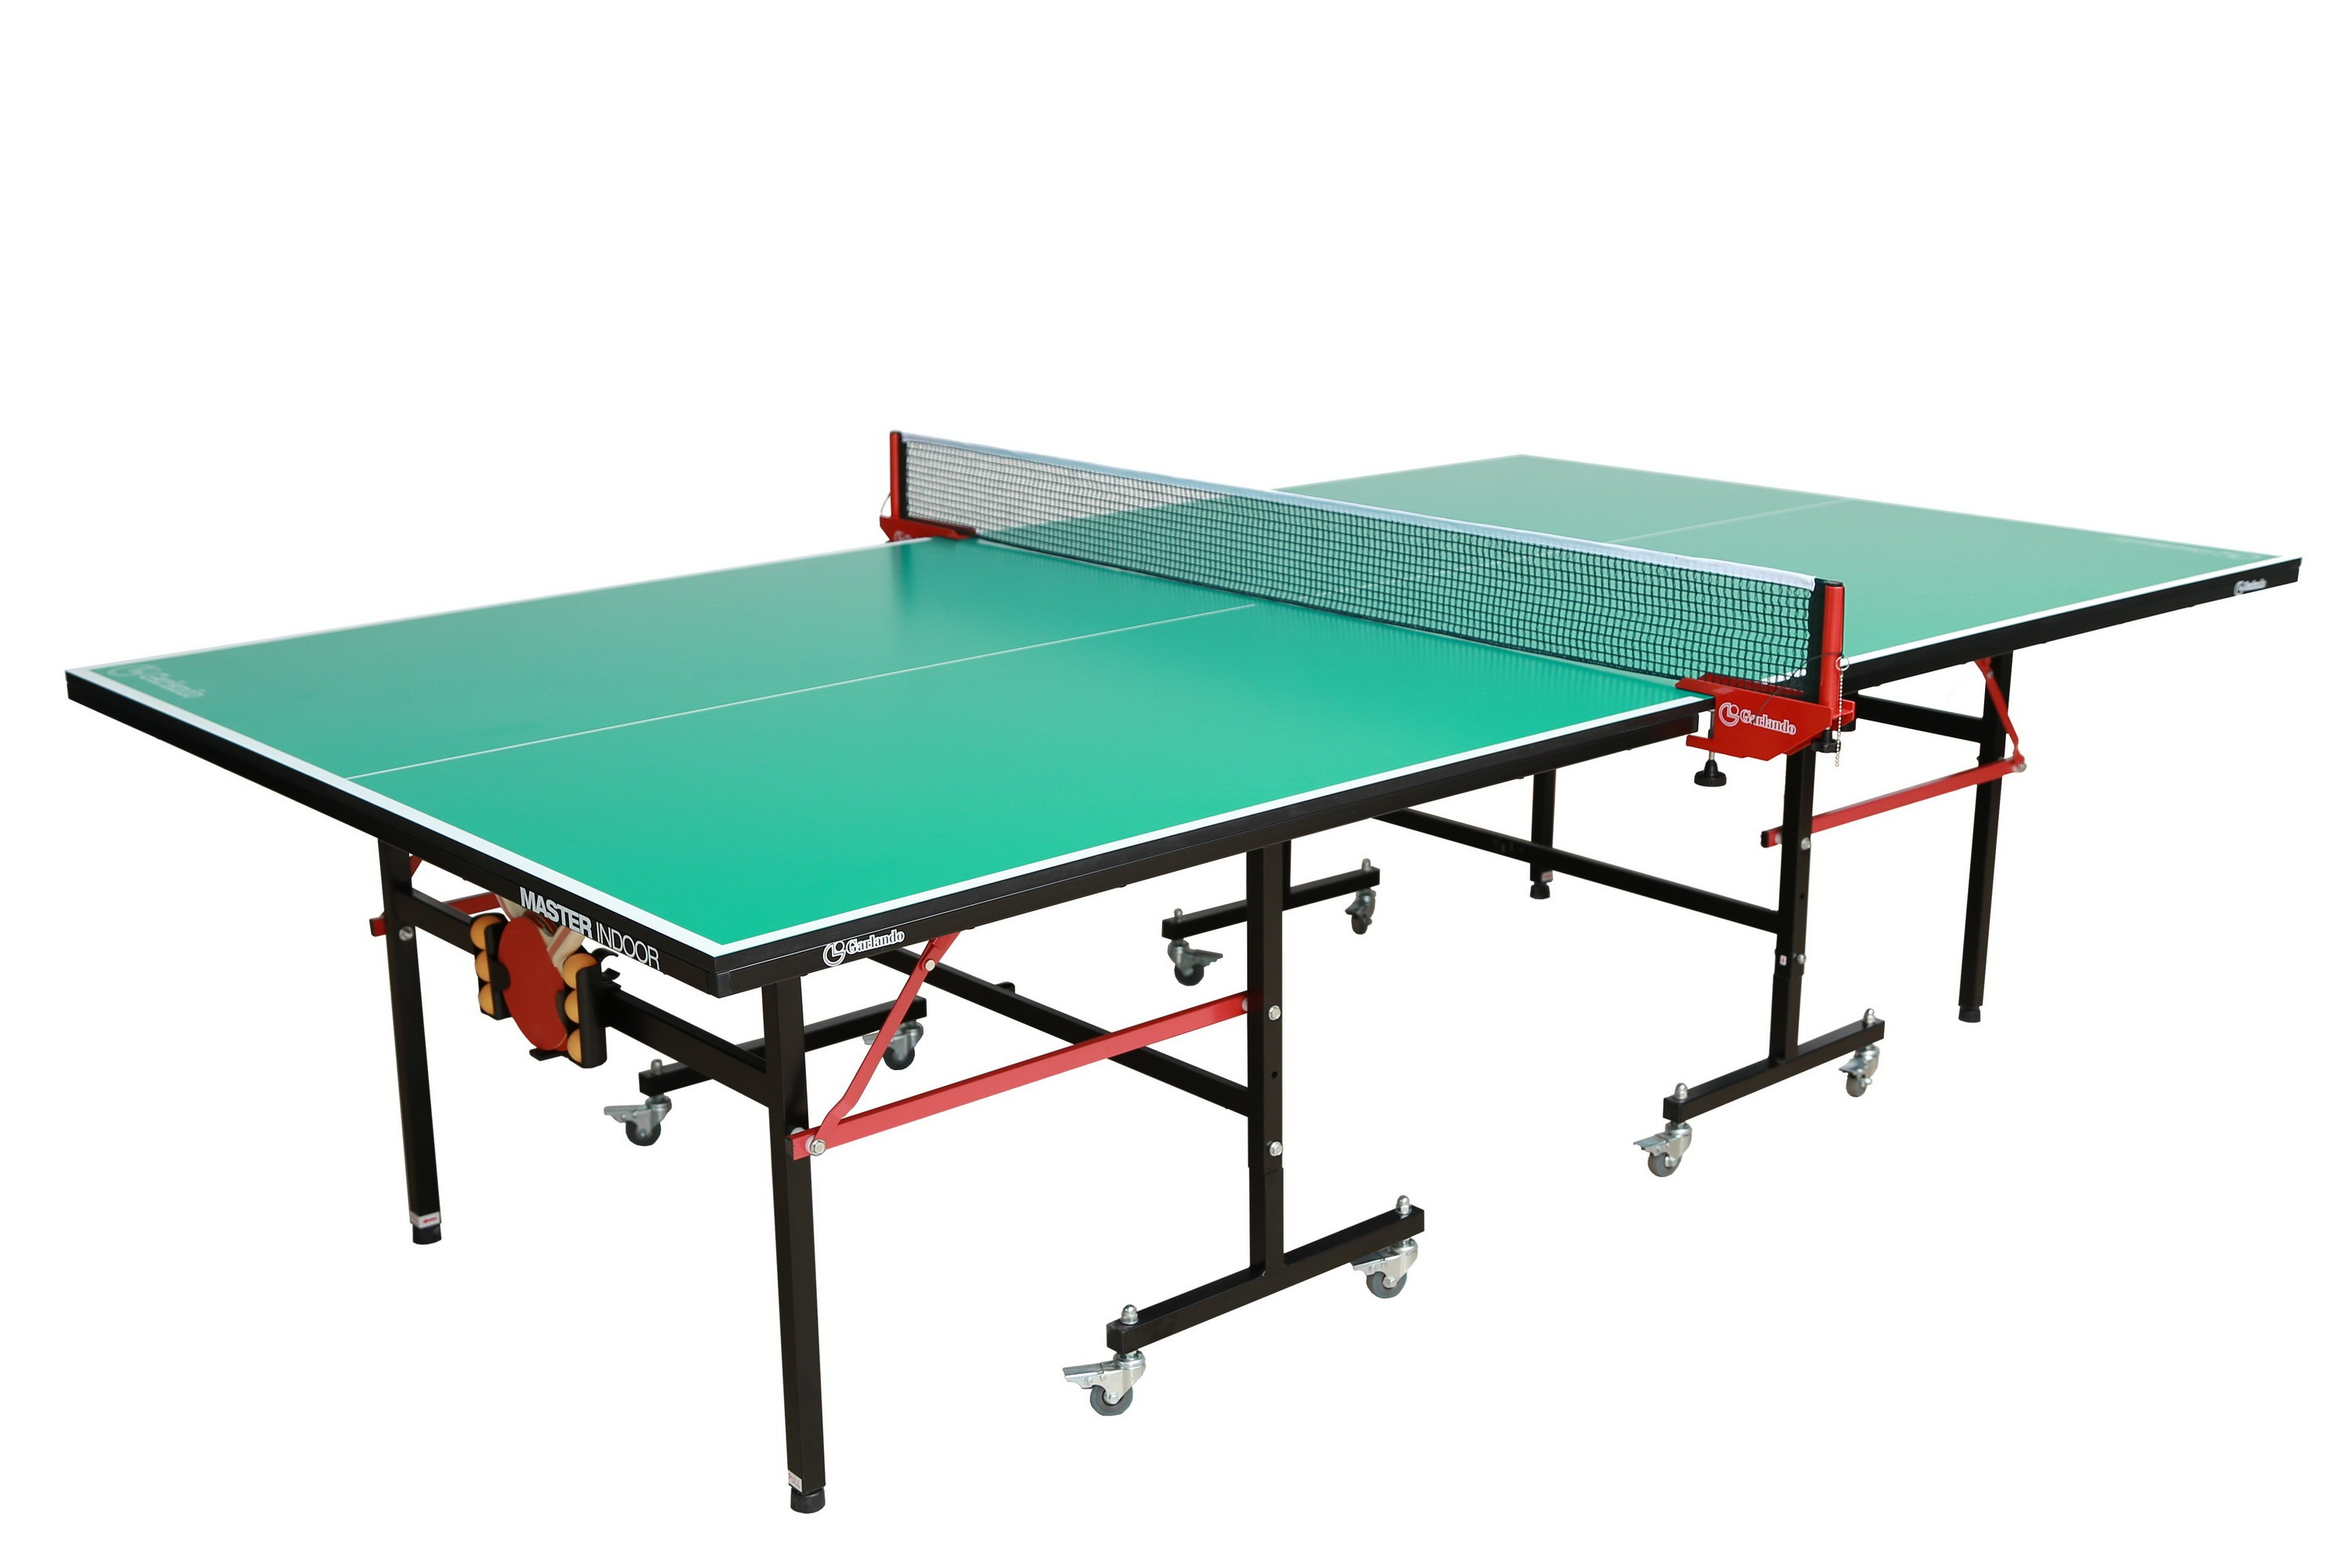 Ping pong table top - Garlando Master Indoor Table Tennis